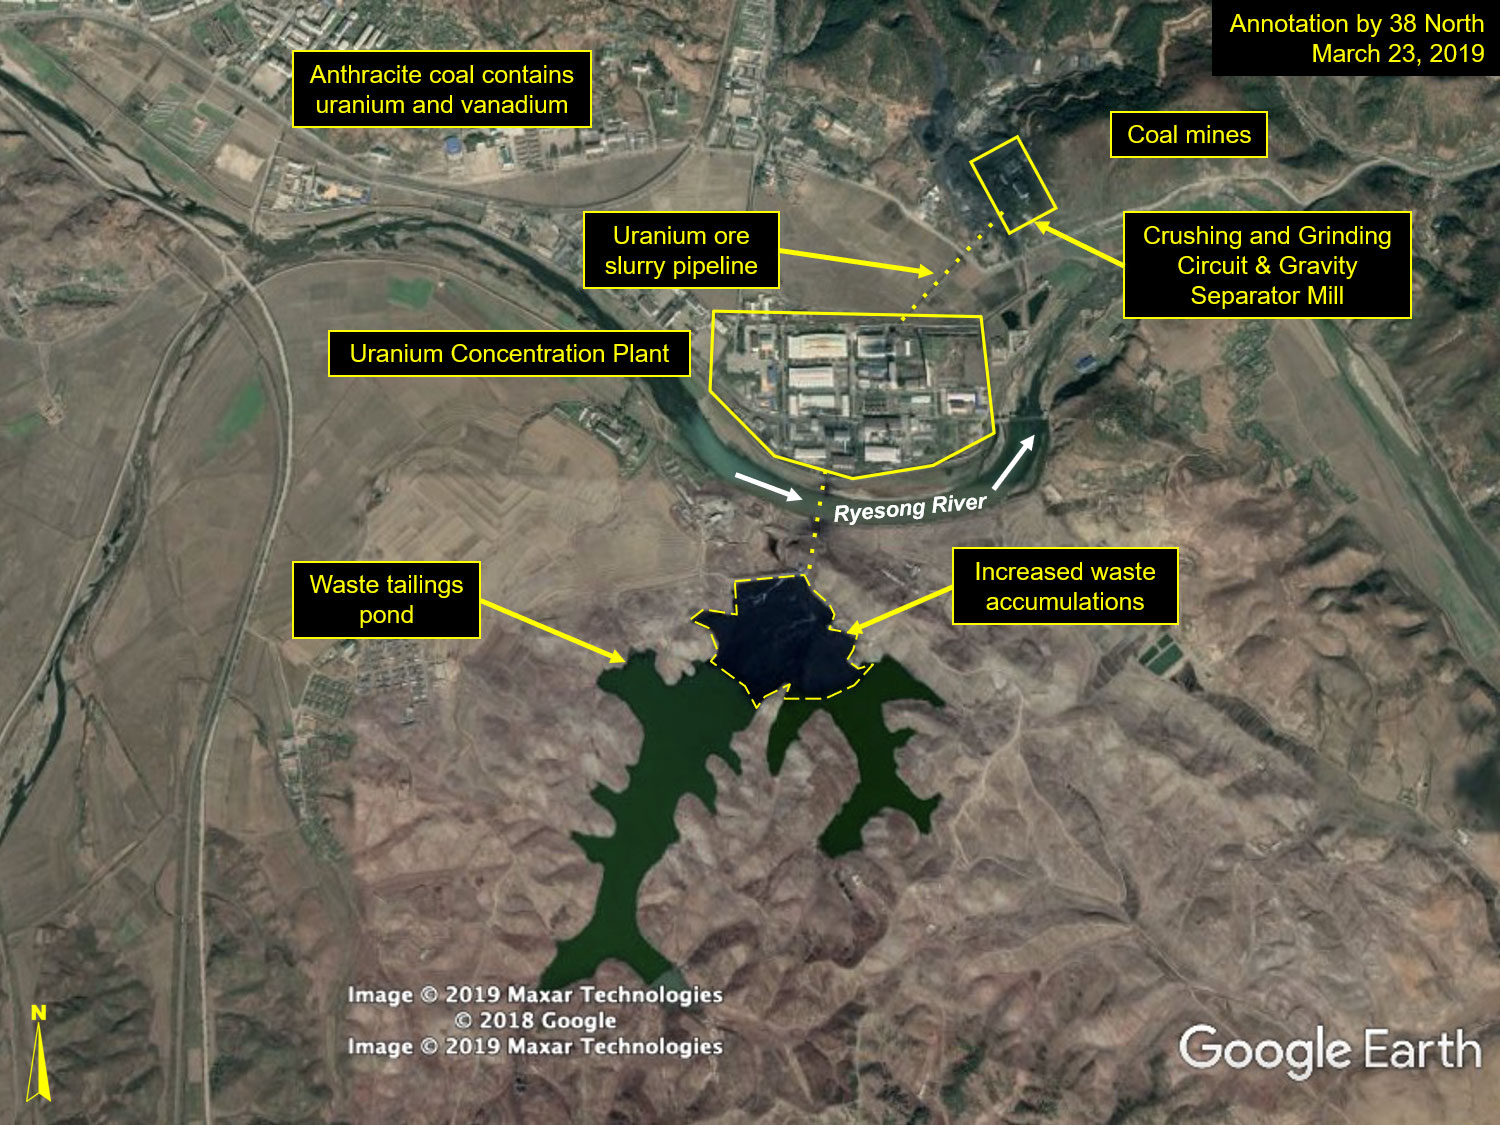 Figure 1. Overview of the Pyongsan uranium mines and collocated concentration plant, as well as the growing accumulation of waste in the tailings pond providing clear evidence of continues operations at the plant.